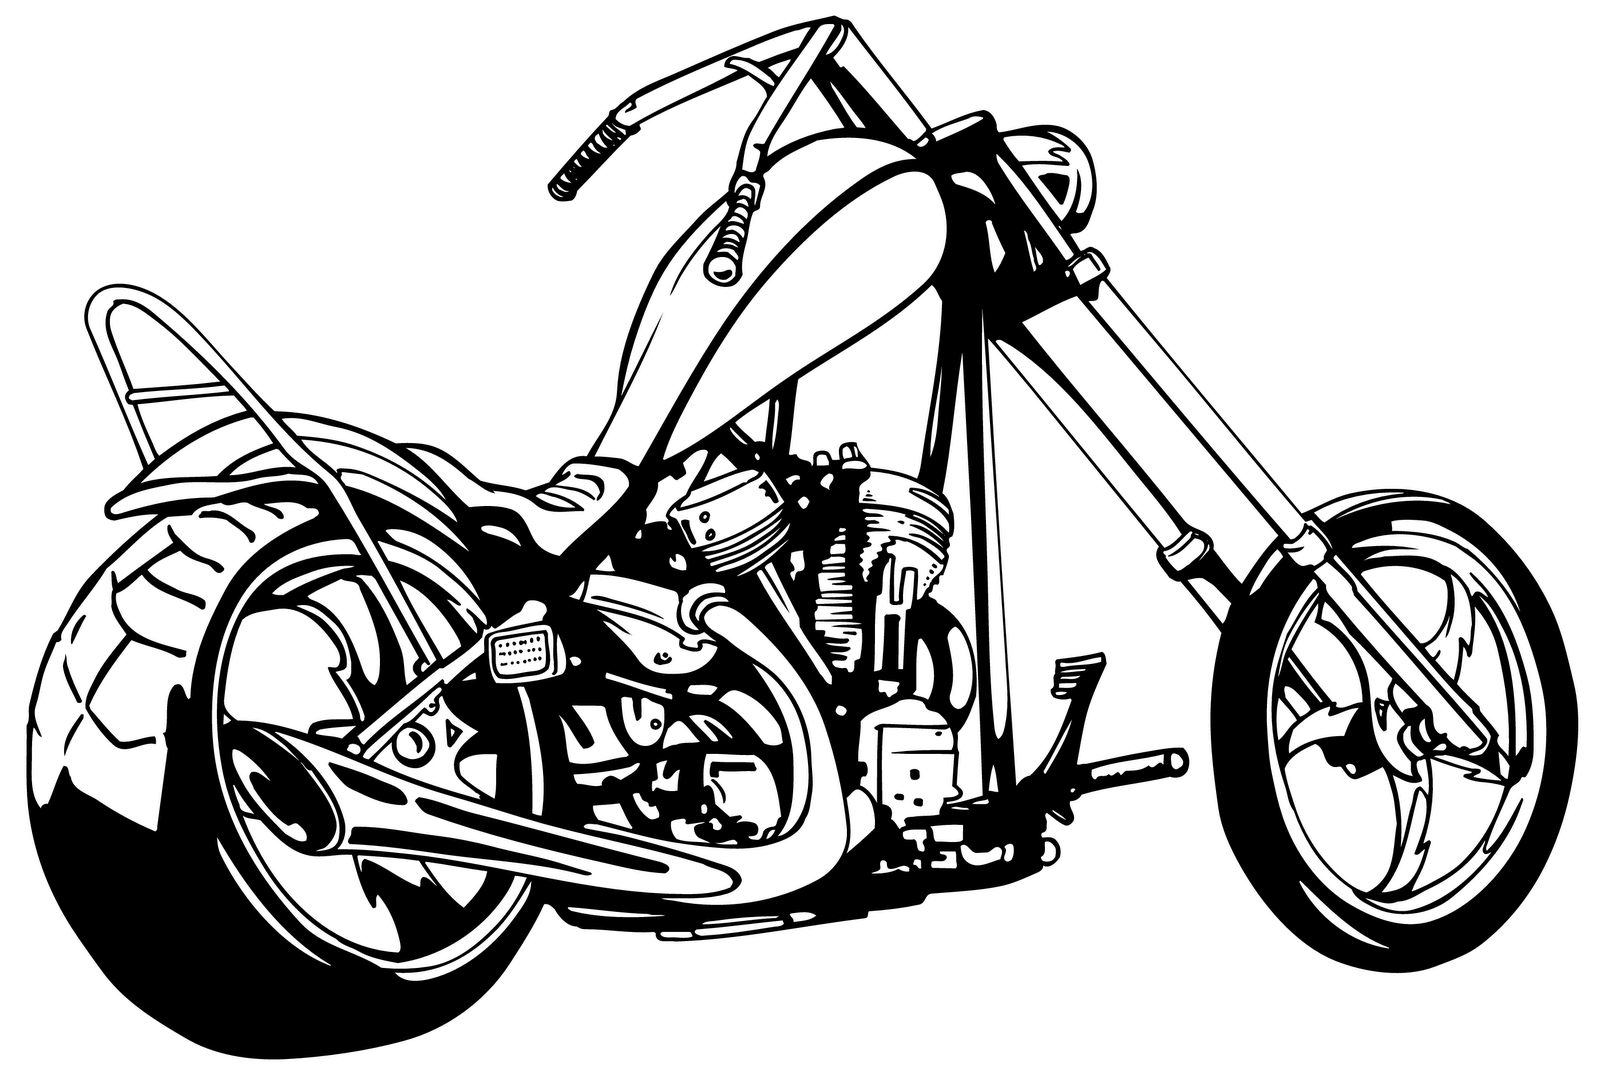 Motorcycle clipart triumph motorcycle. Motorcycles ltd harley davidson